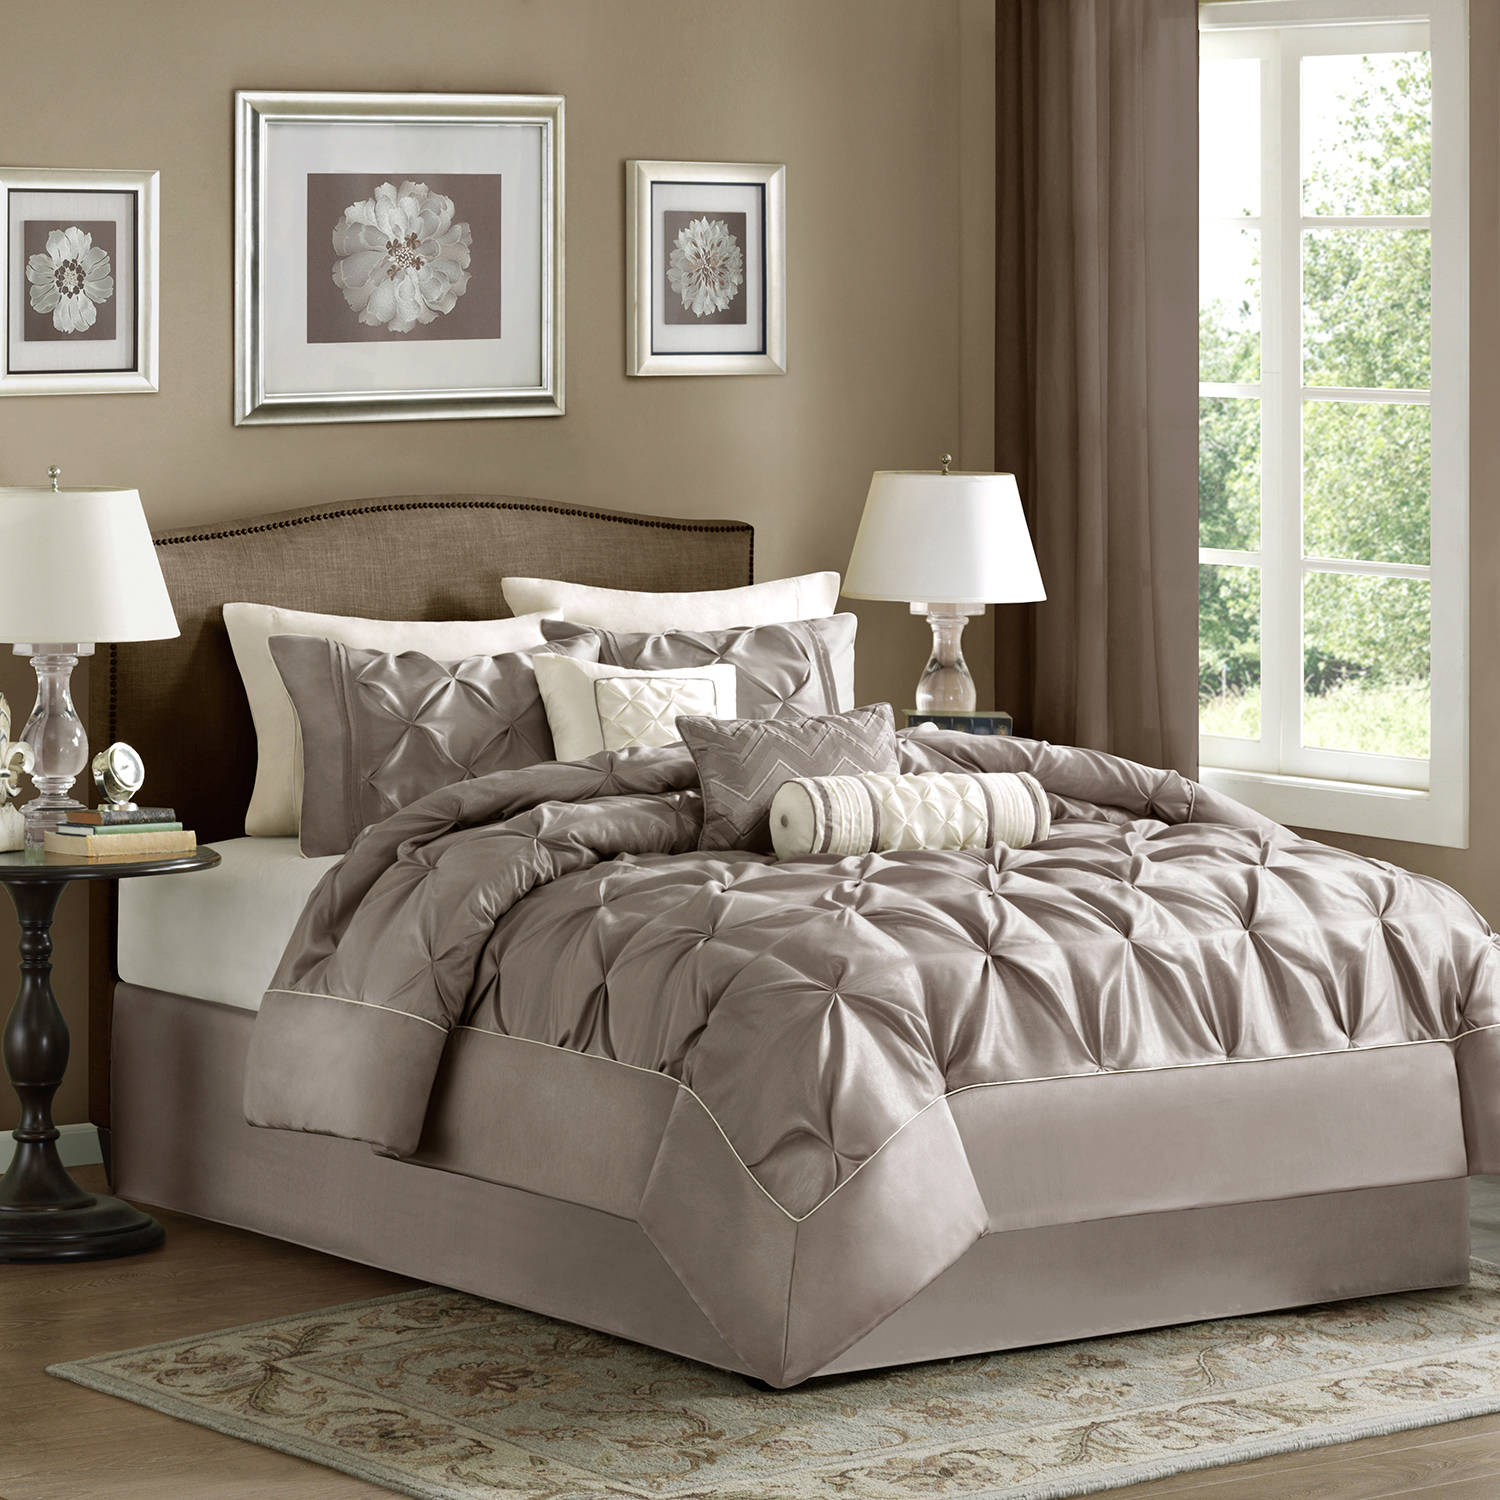 Captivating california king bedding for bedroom design with california king bed frame